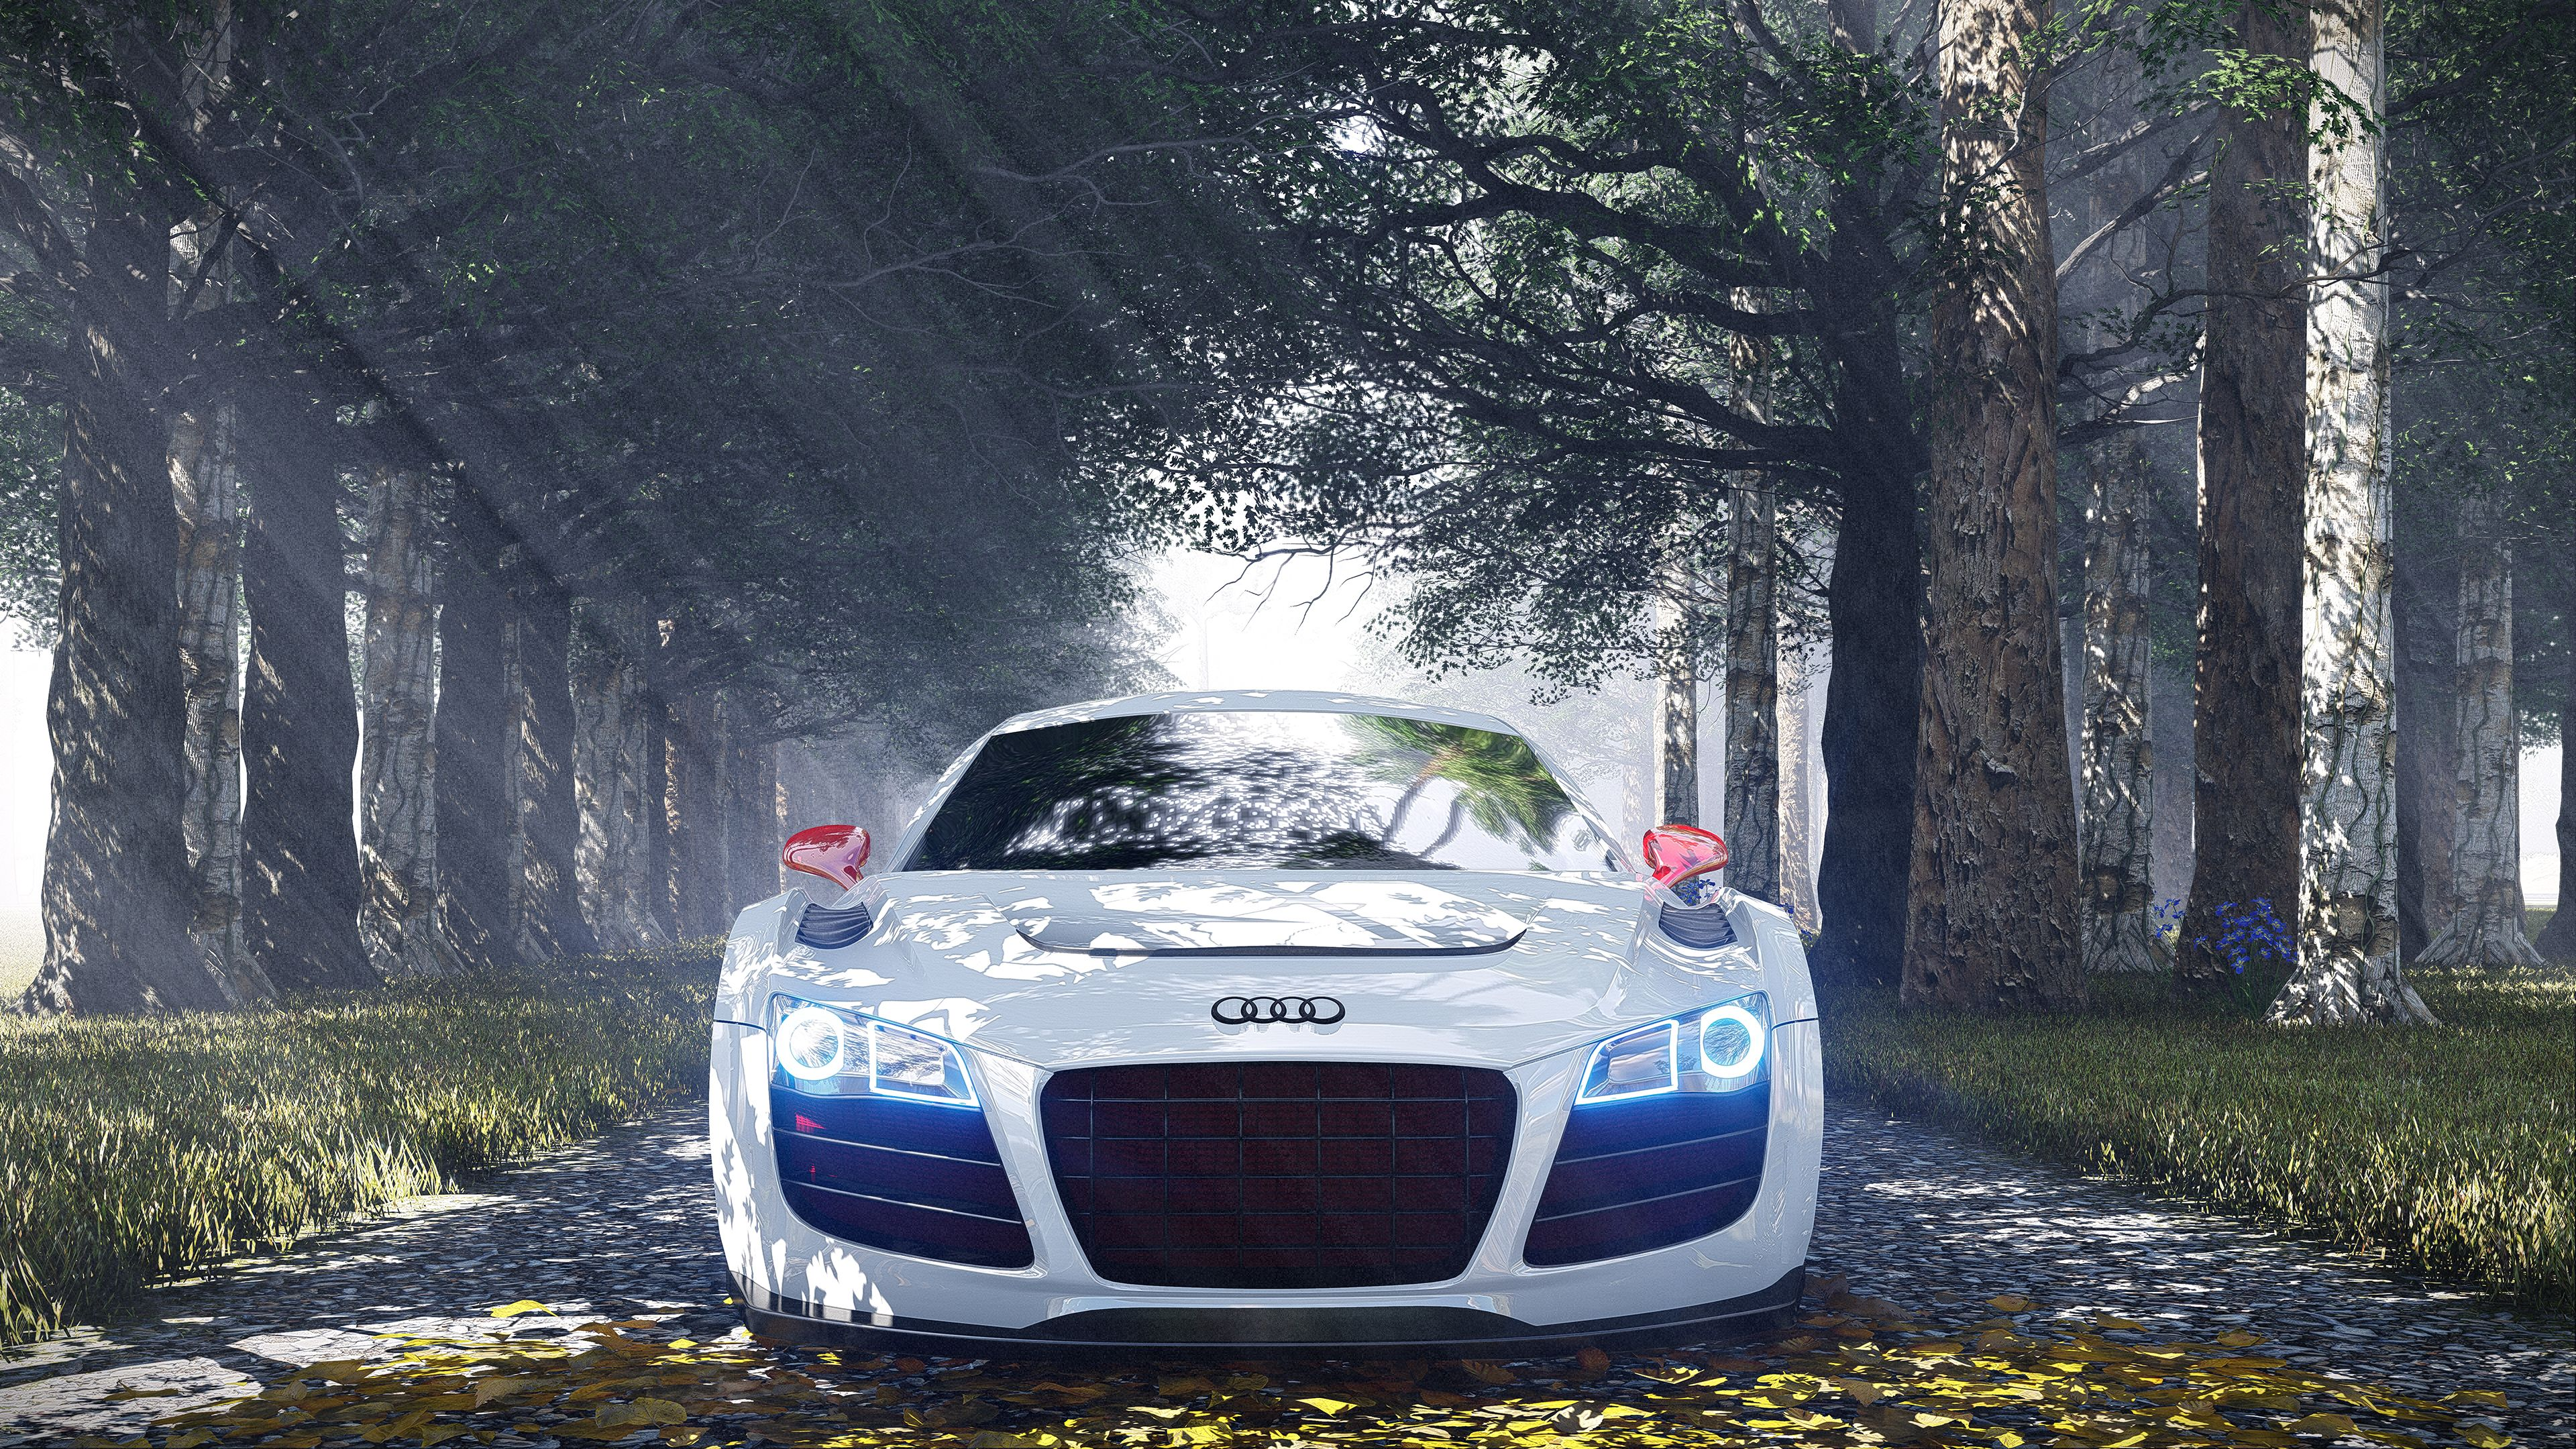 Wallpaper 4k Audi R8 Special Edition 4k Wallpapers Audi R8